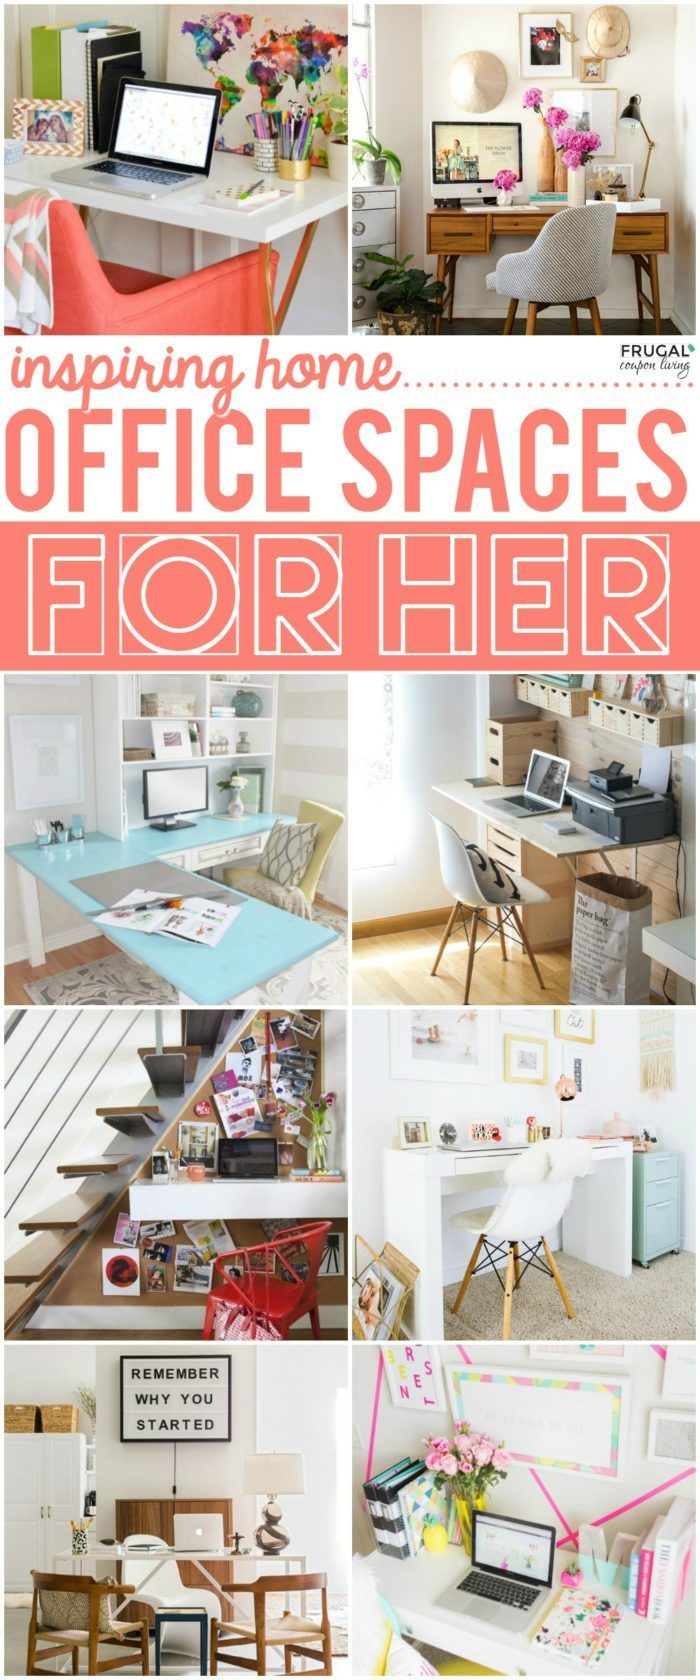 Home Office Ideas for Women on Frugal Coupon Living. Creative and inspiring room...